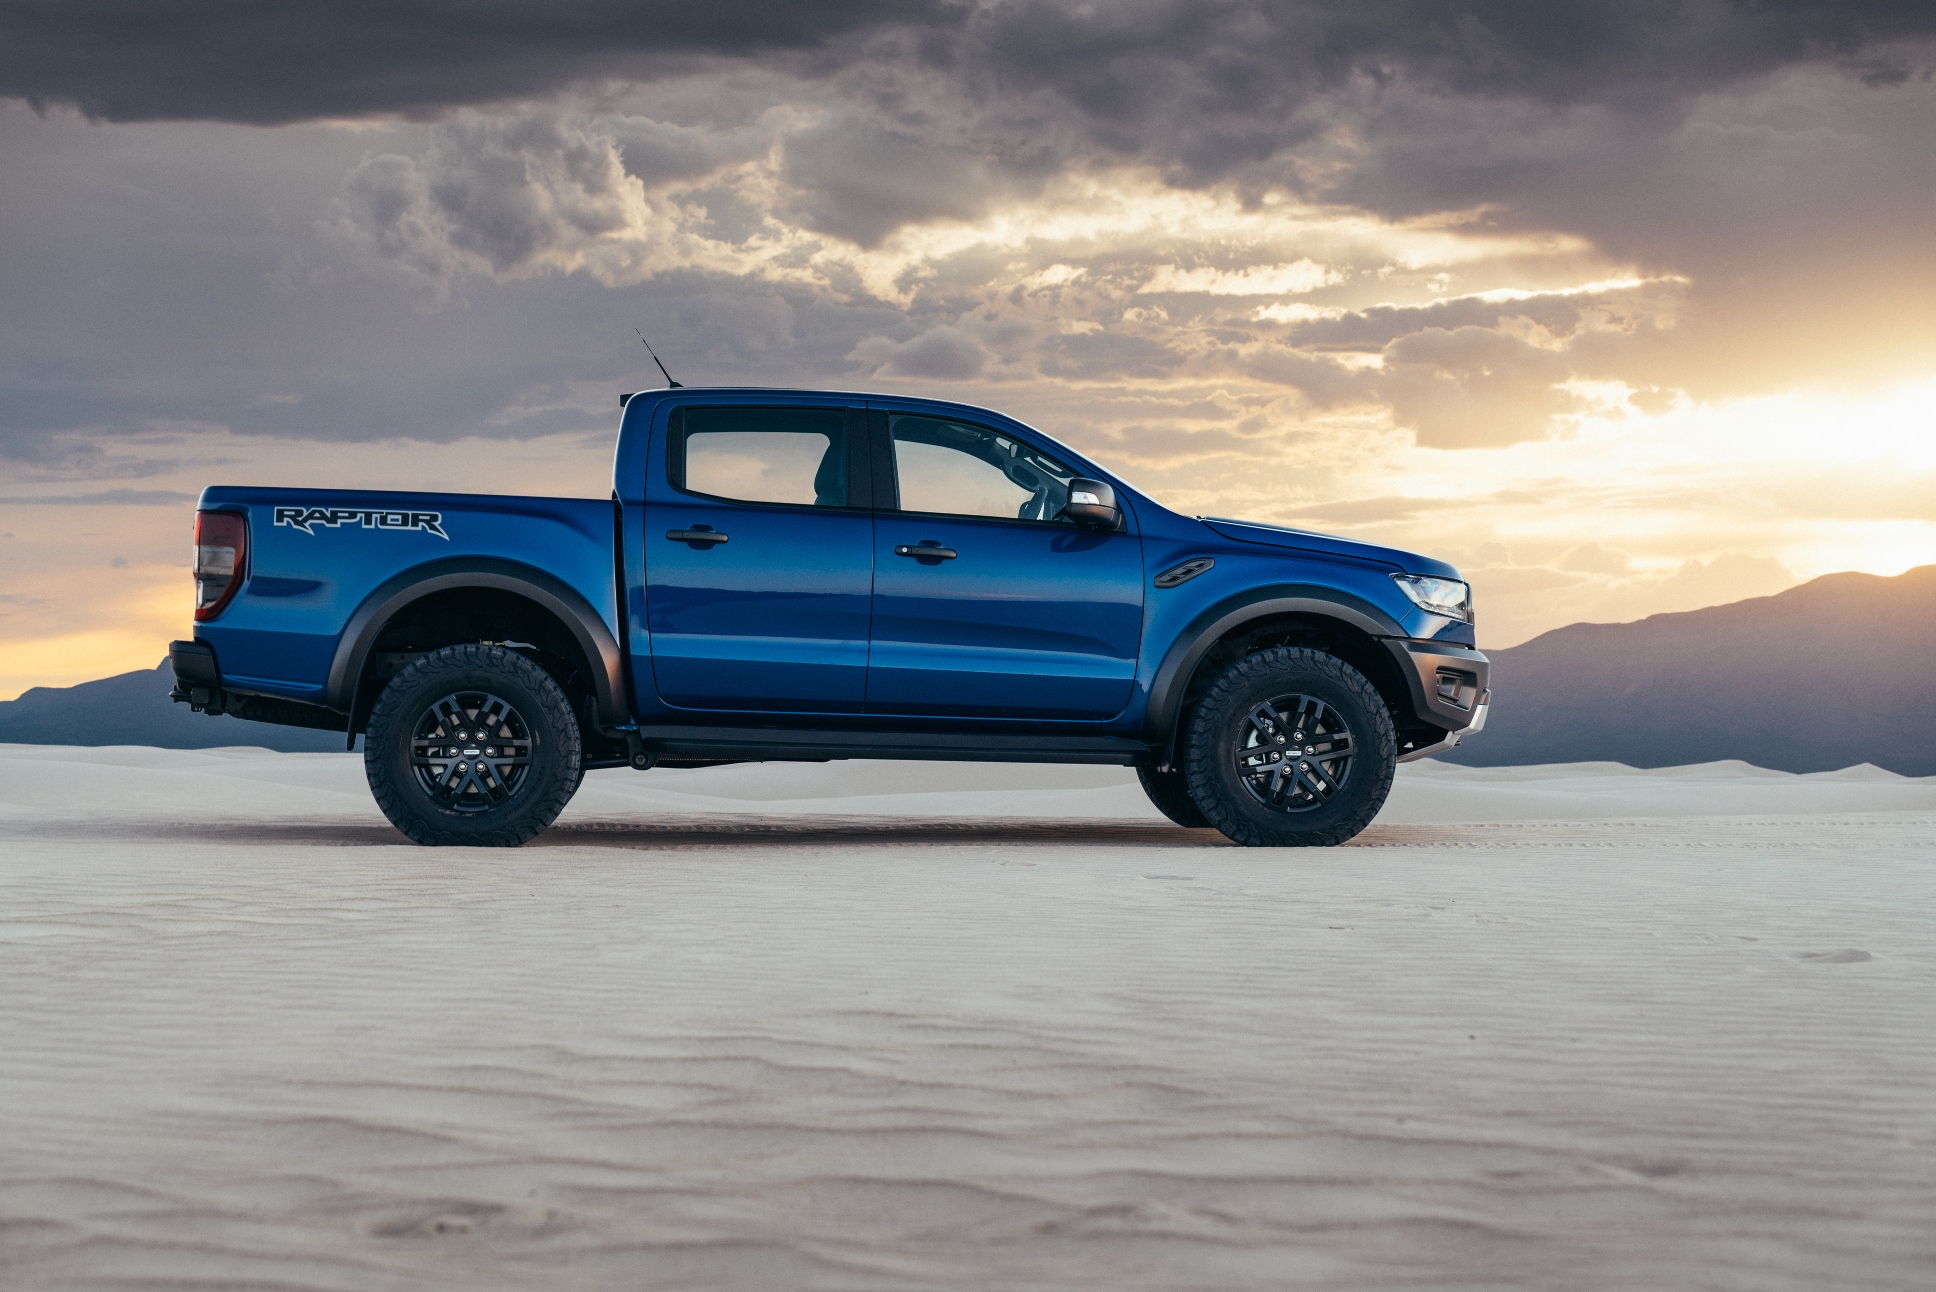 Chief Engineer Defends The 2019 Ford Ranger Raptor's Diesel